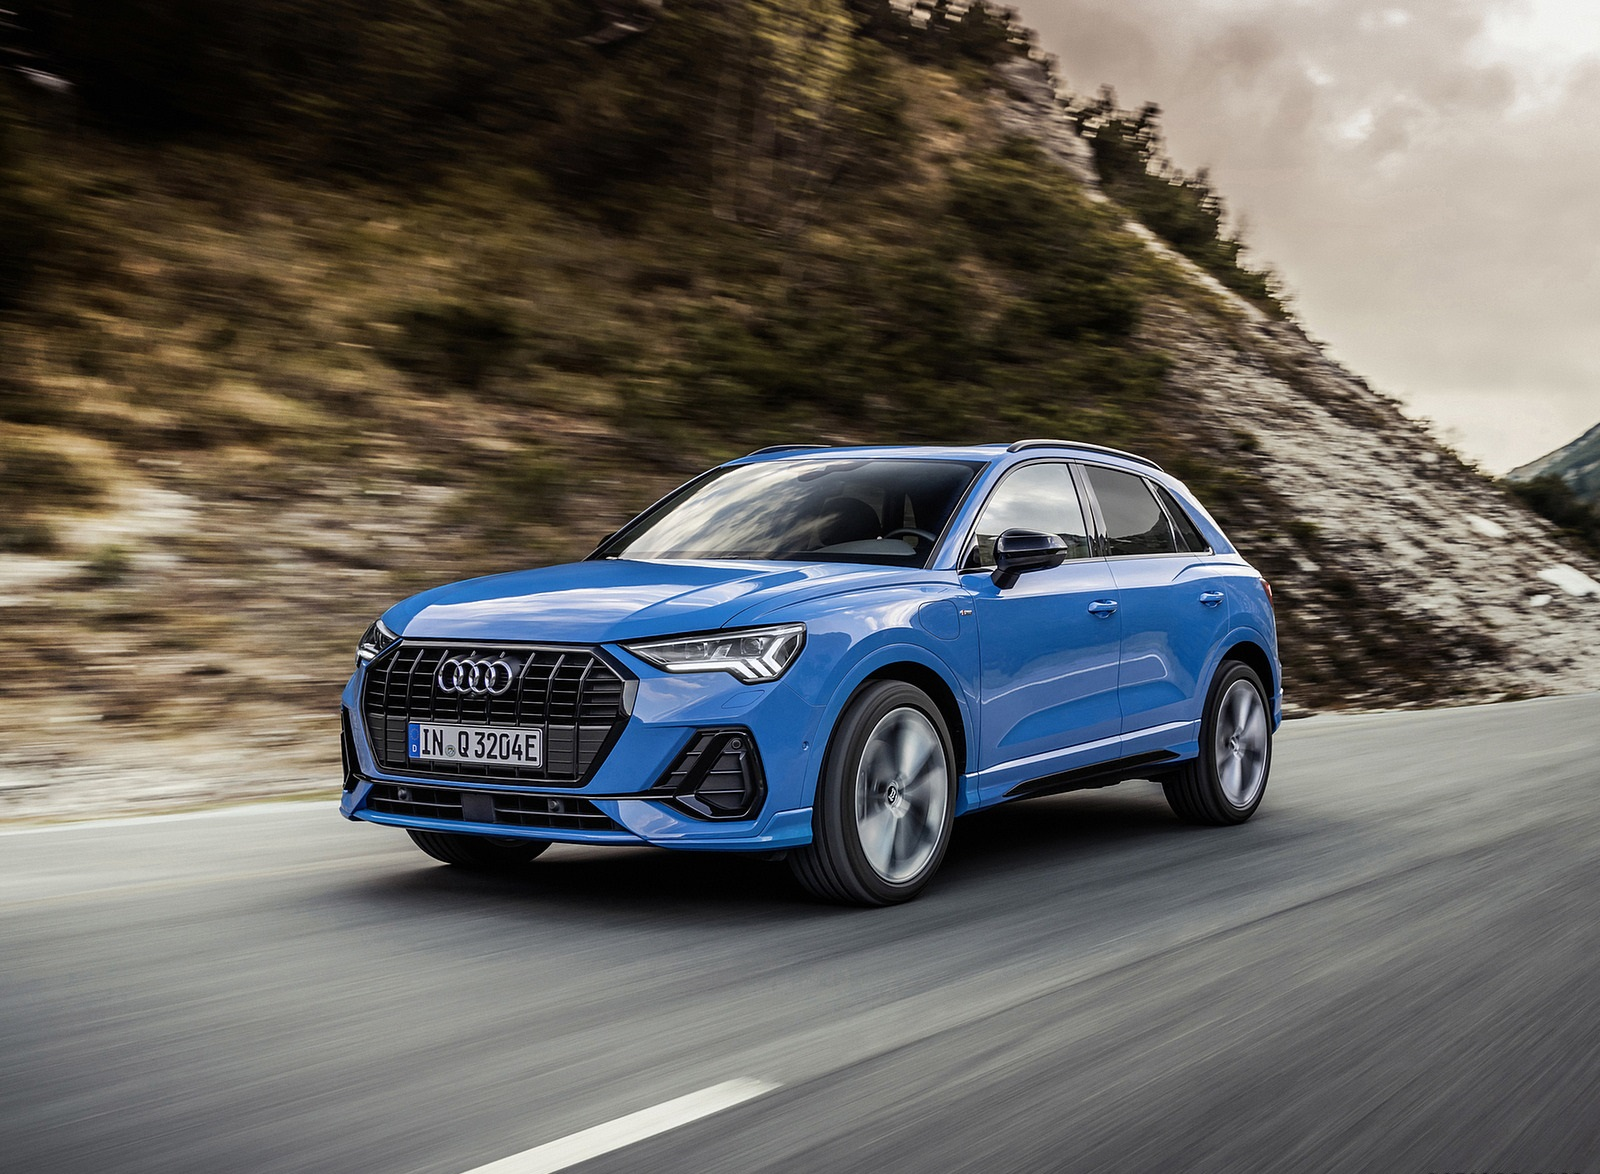 2021 Audi Q3 TFSI e Plug-In Hybrid (Color: Turbo Blue) Front Three-Quarter Wallpapers  (3)